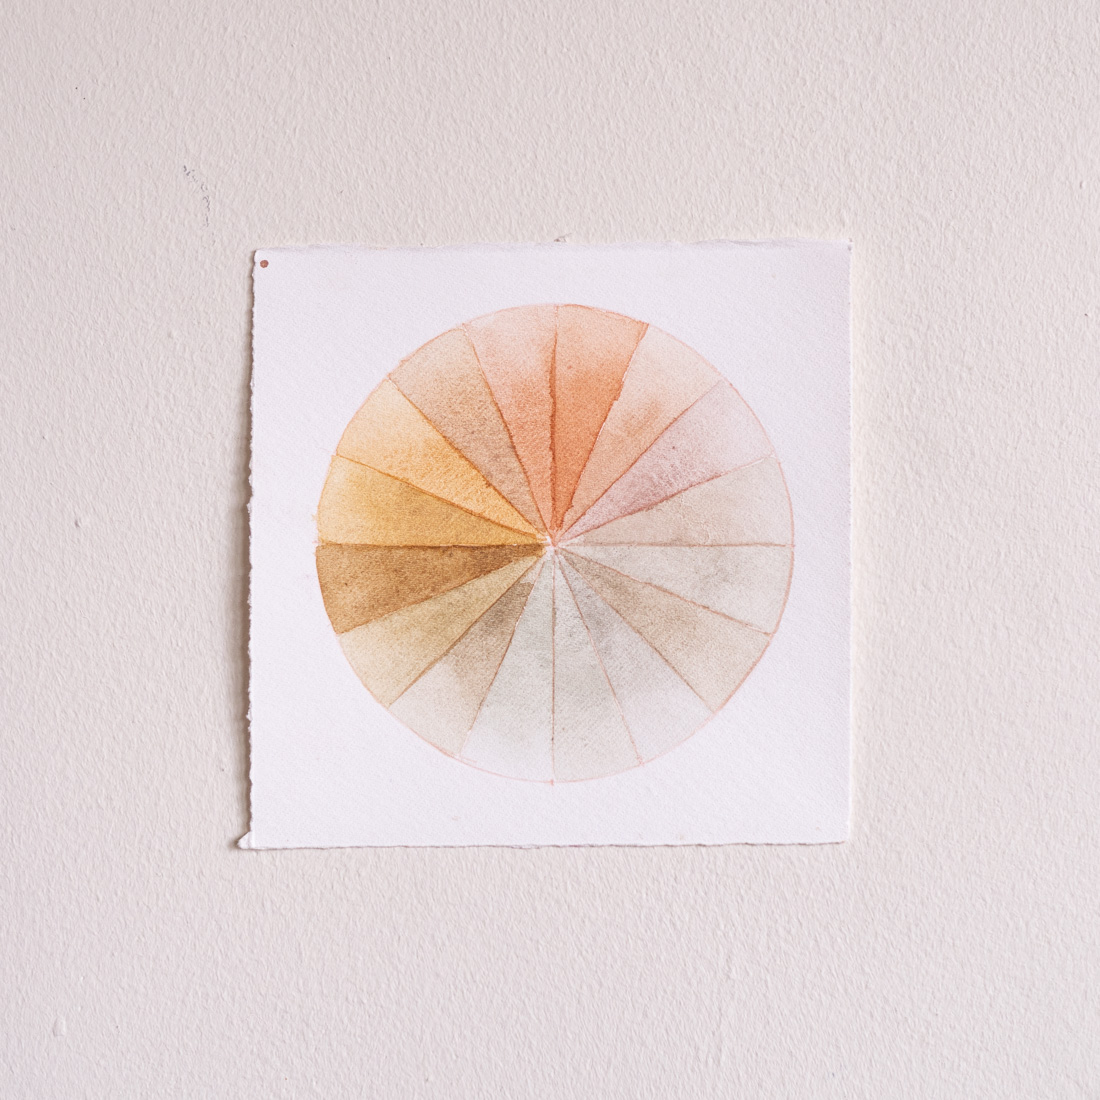 Anakiwi Color Wheel II